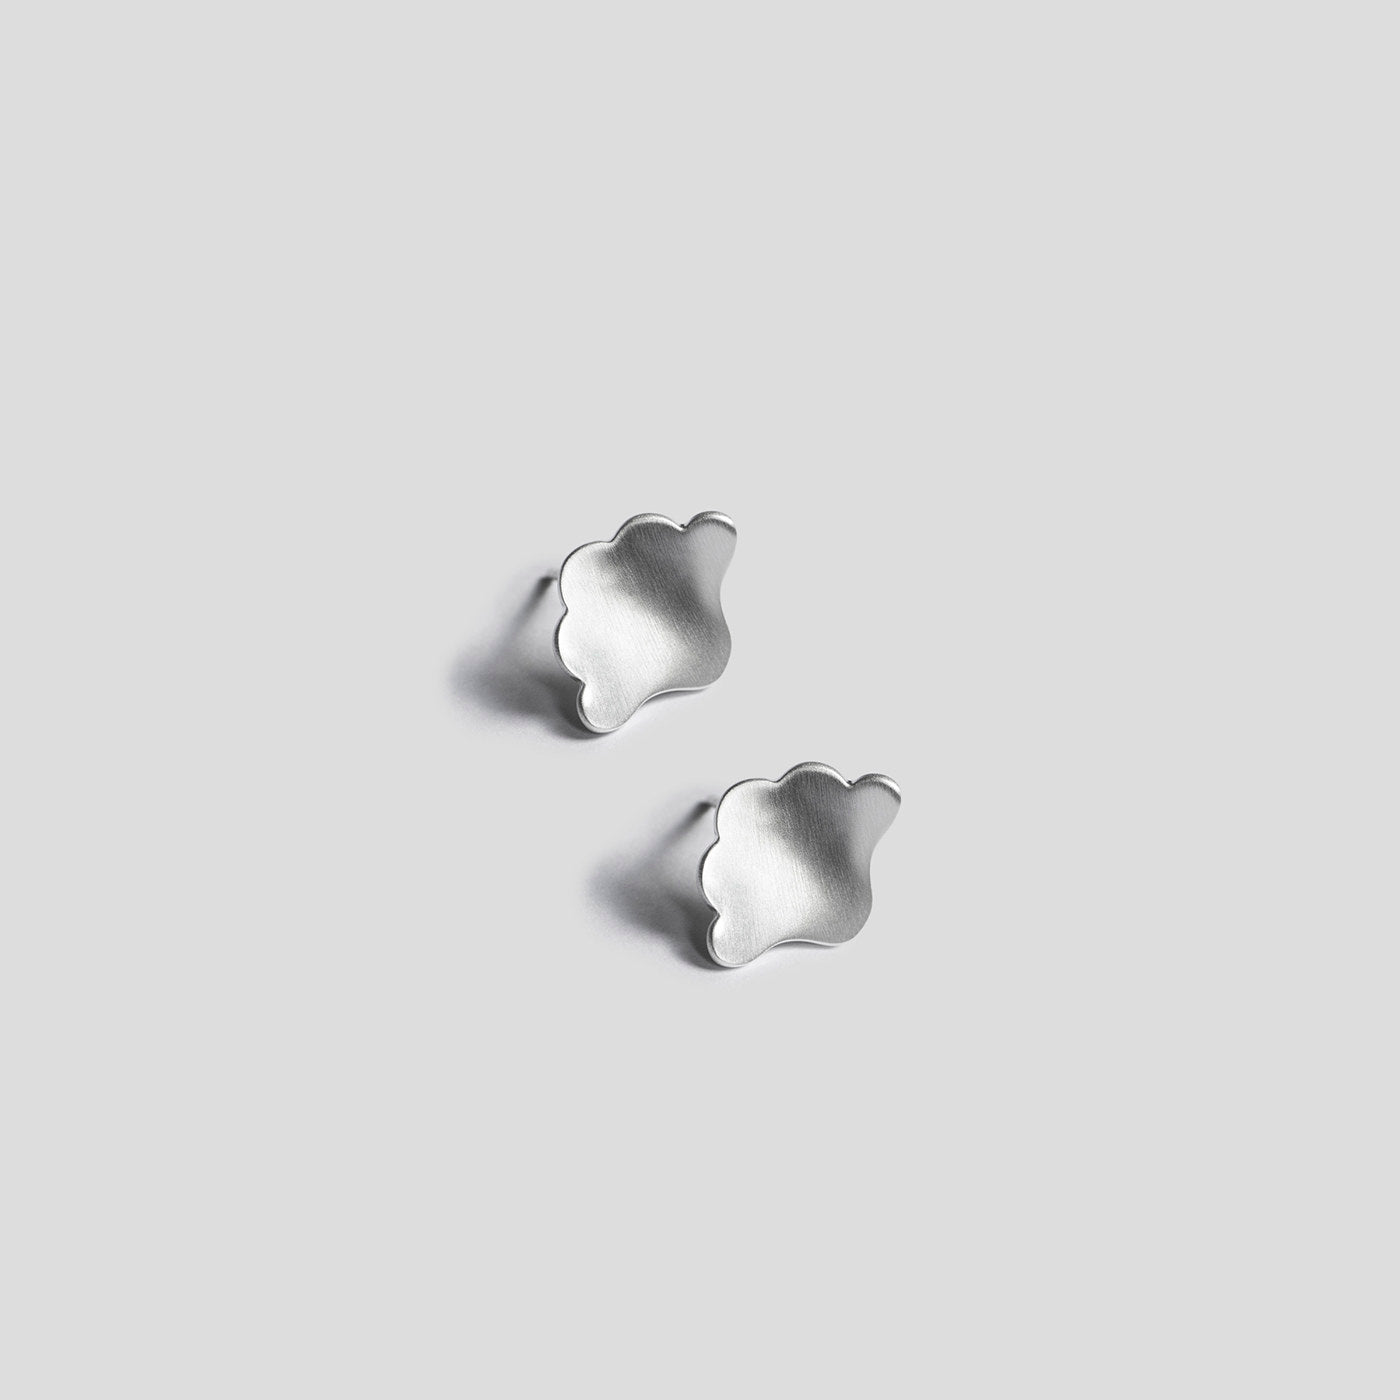 silver plume earrings on white background